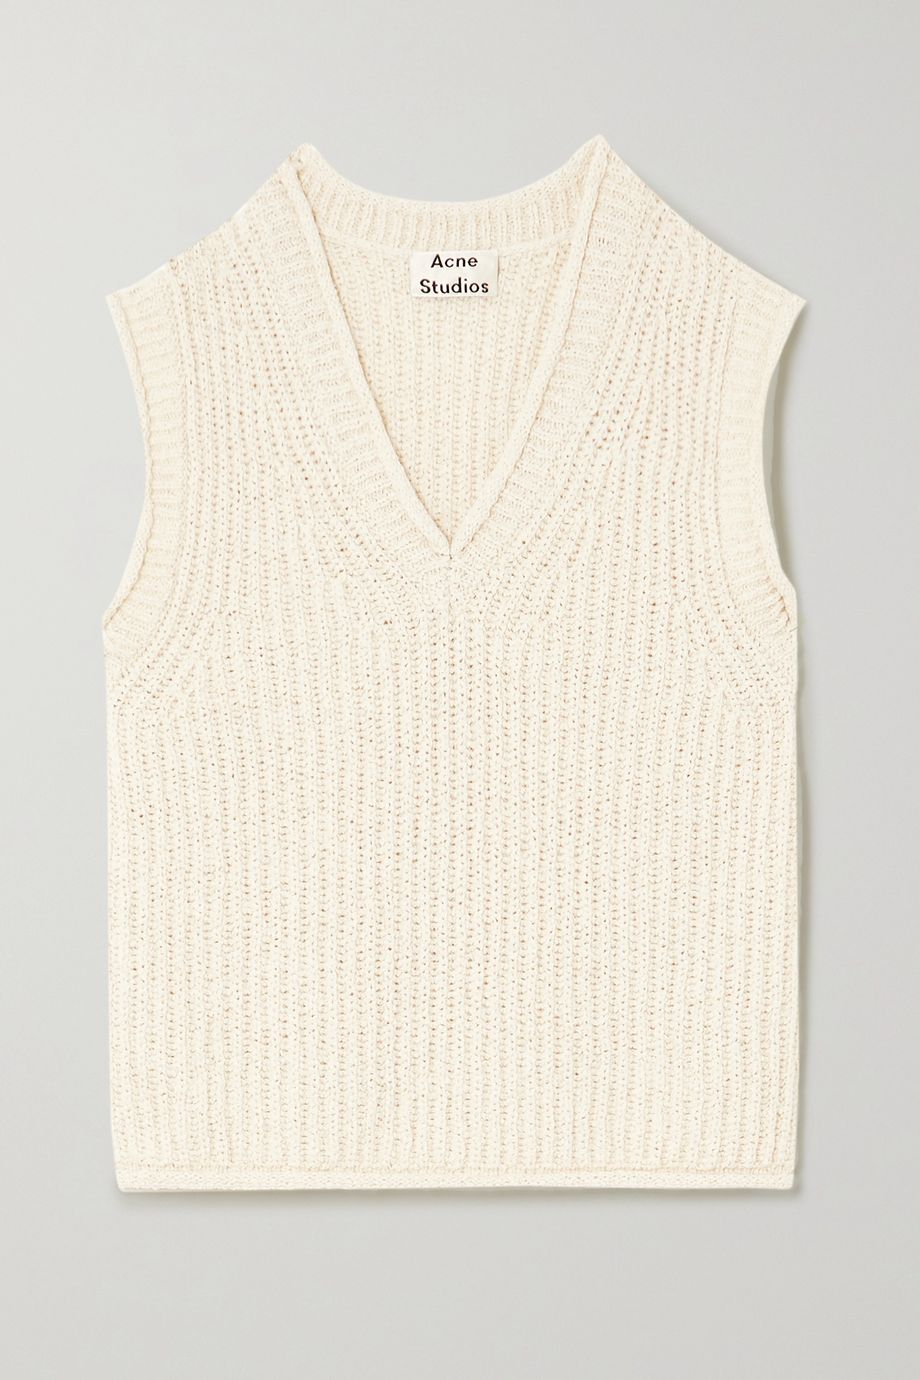 Acne Studios Ribbed cotton-blend vest